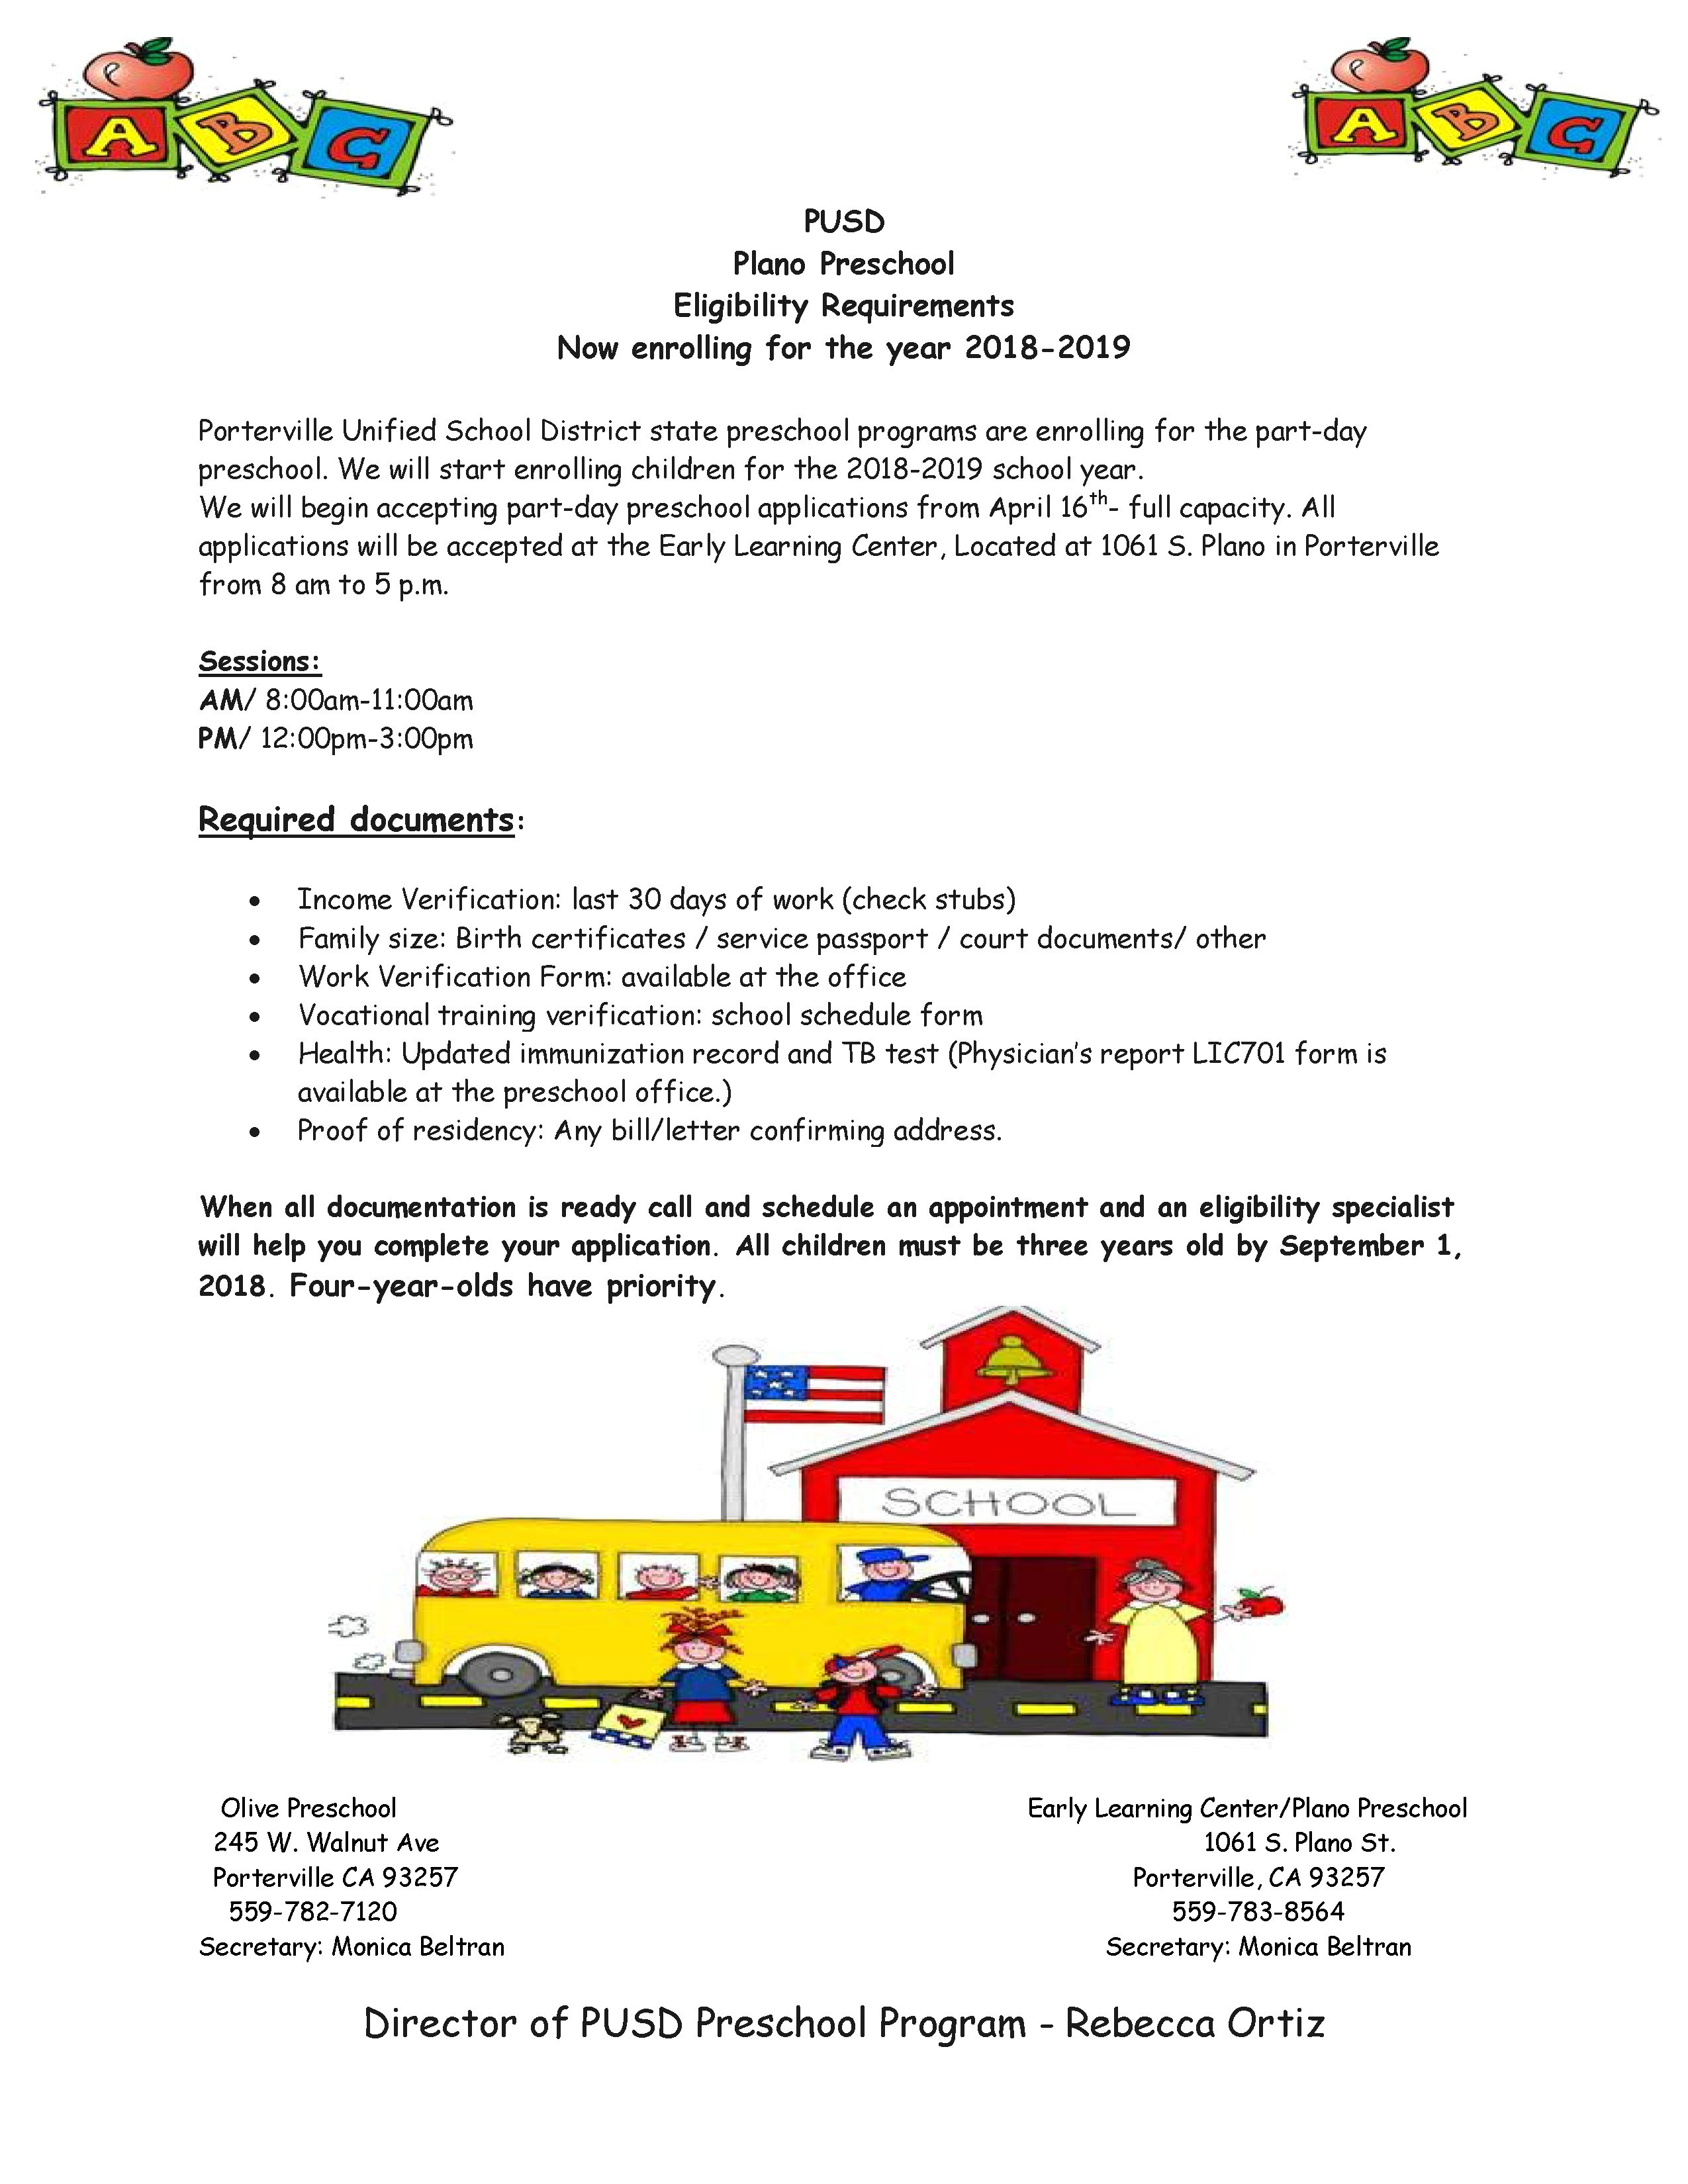 Preschool Programs Information  Preschool Programs  Porterville